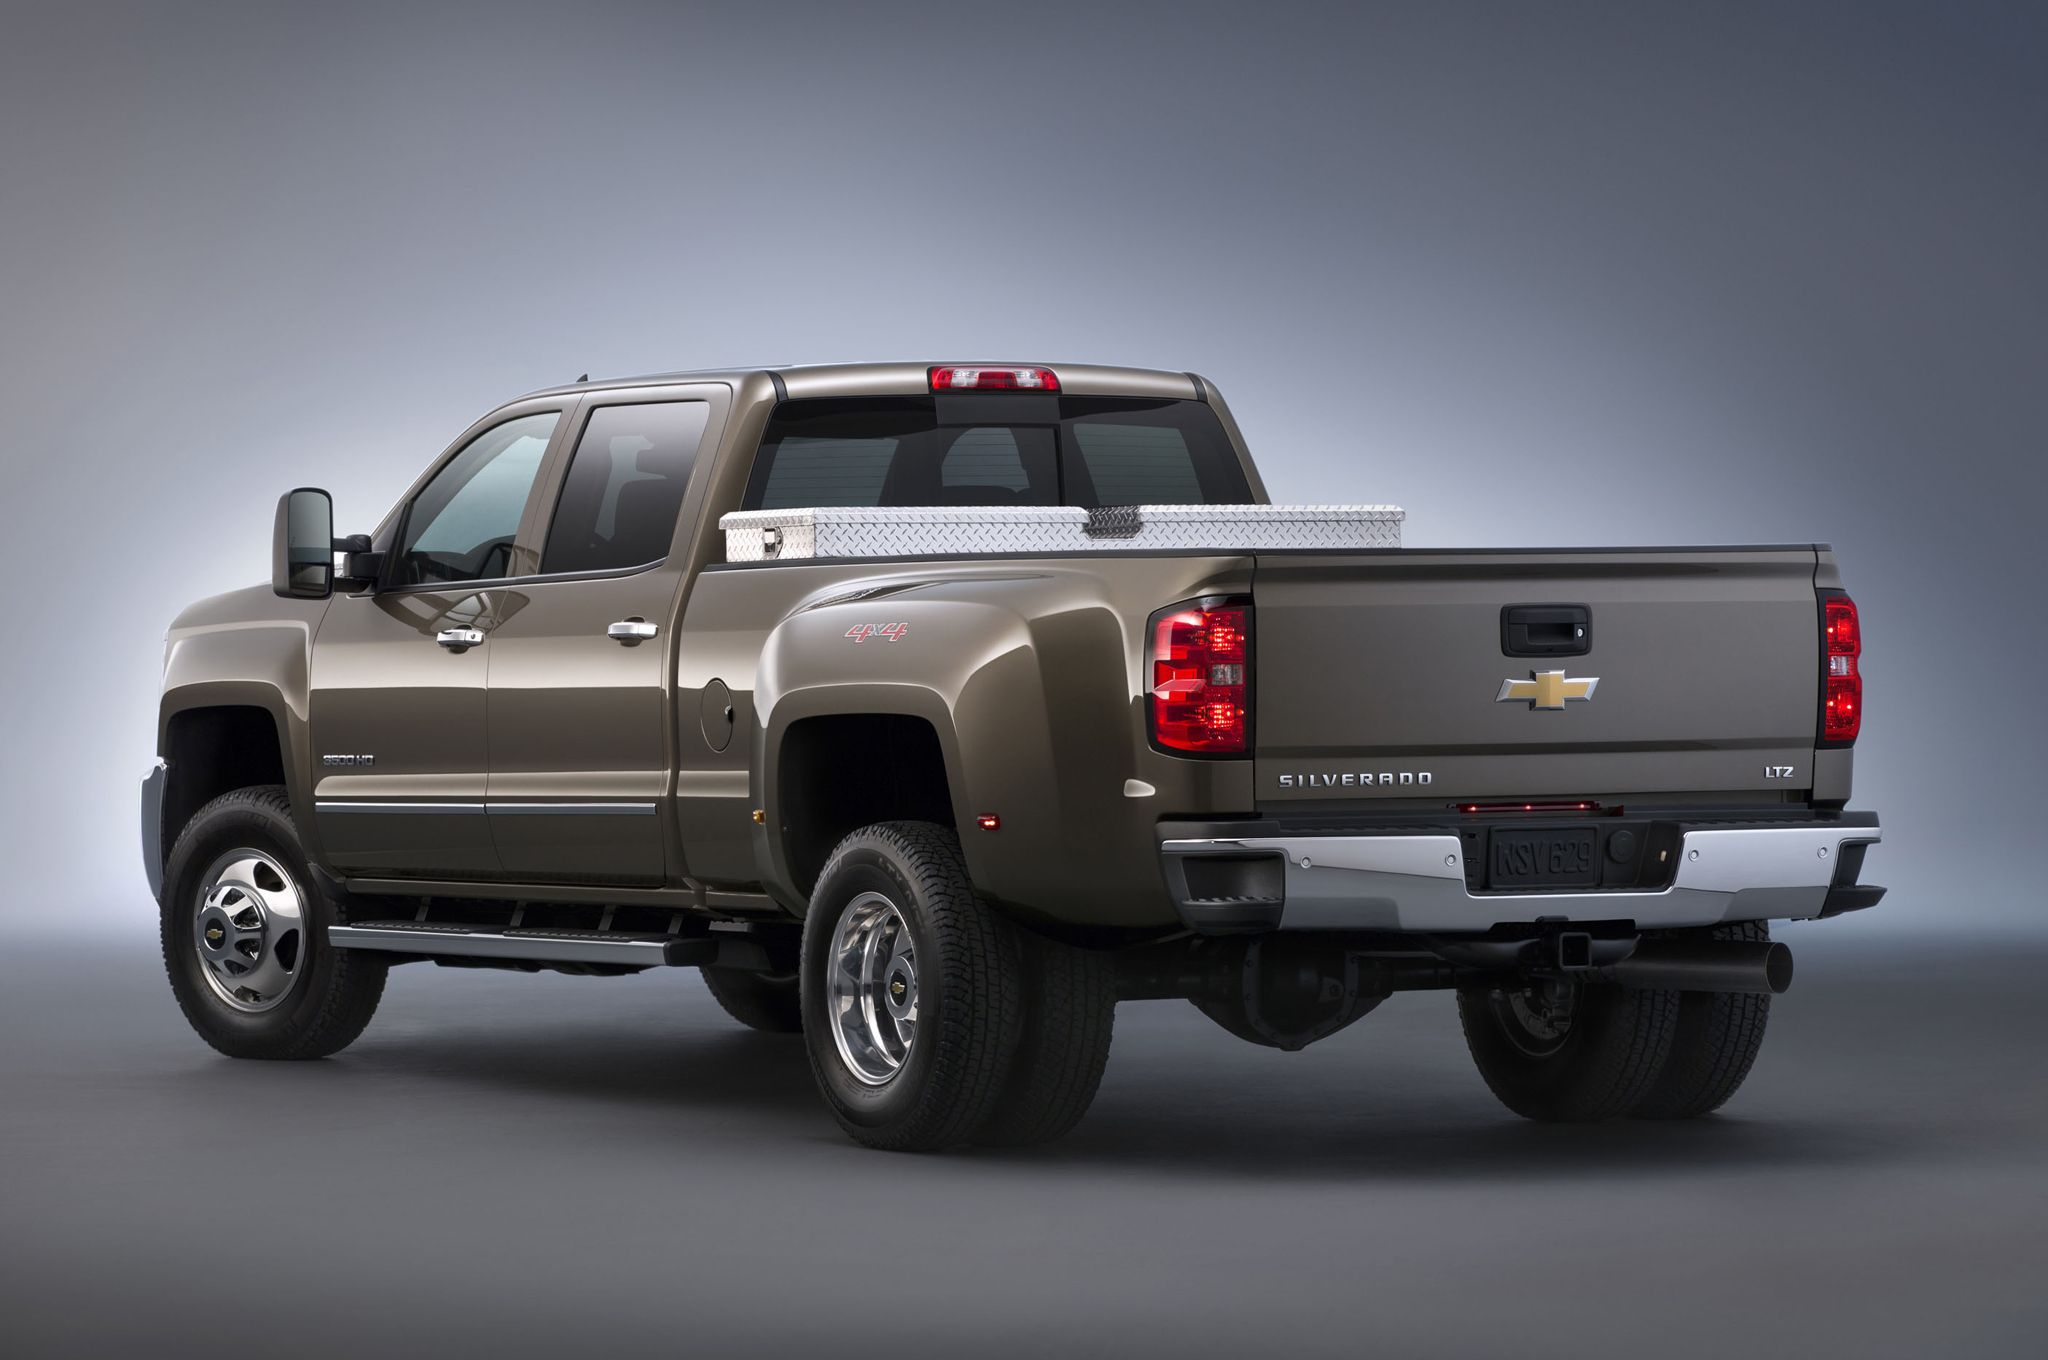 2016 chevrolet silverado is the featured model the 2016 chevrolet silverado ltz image is added in car pictures category by the author on may